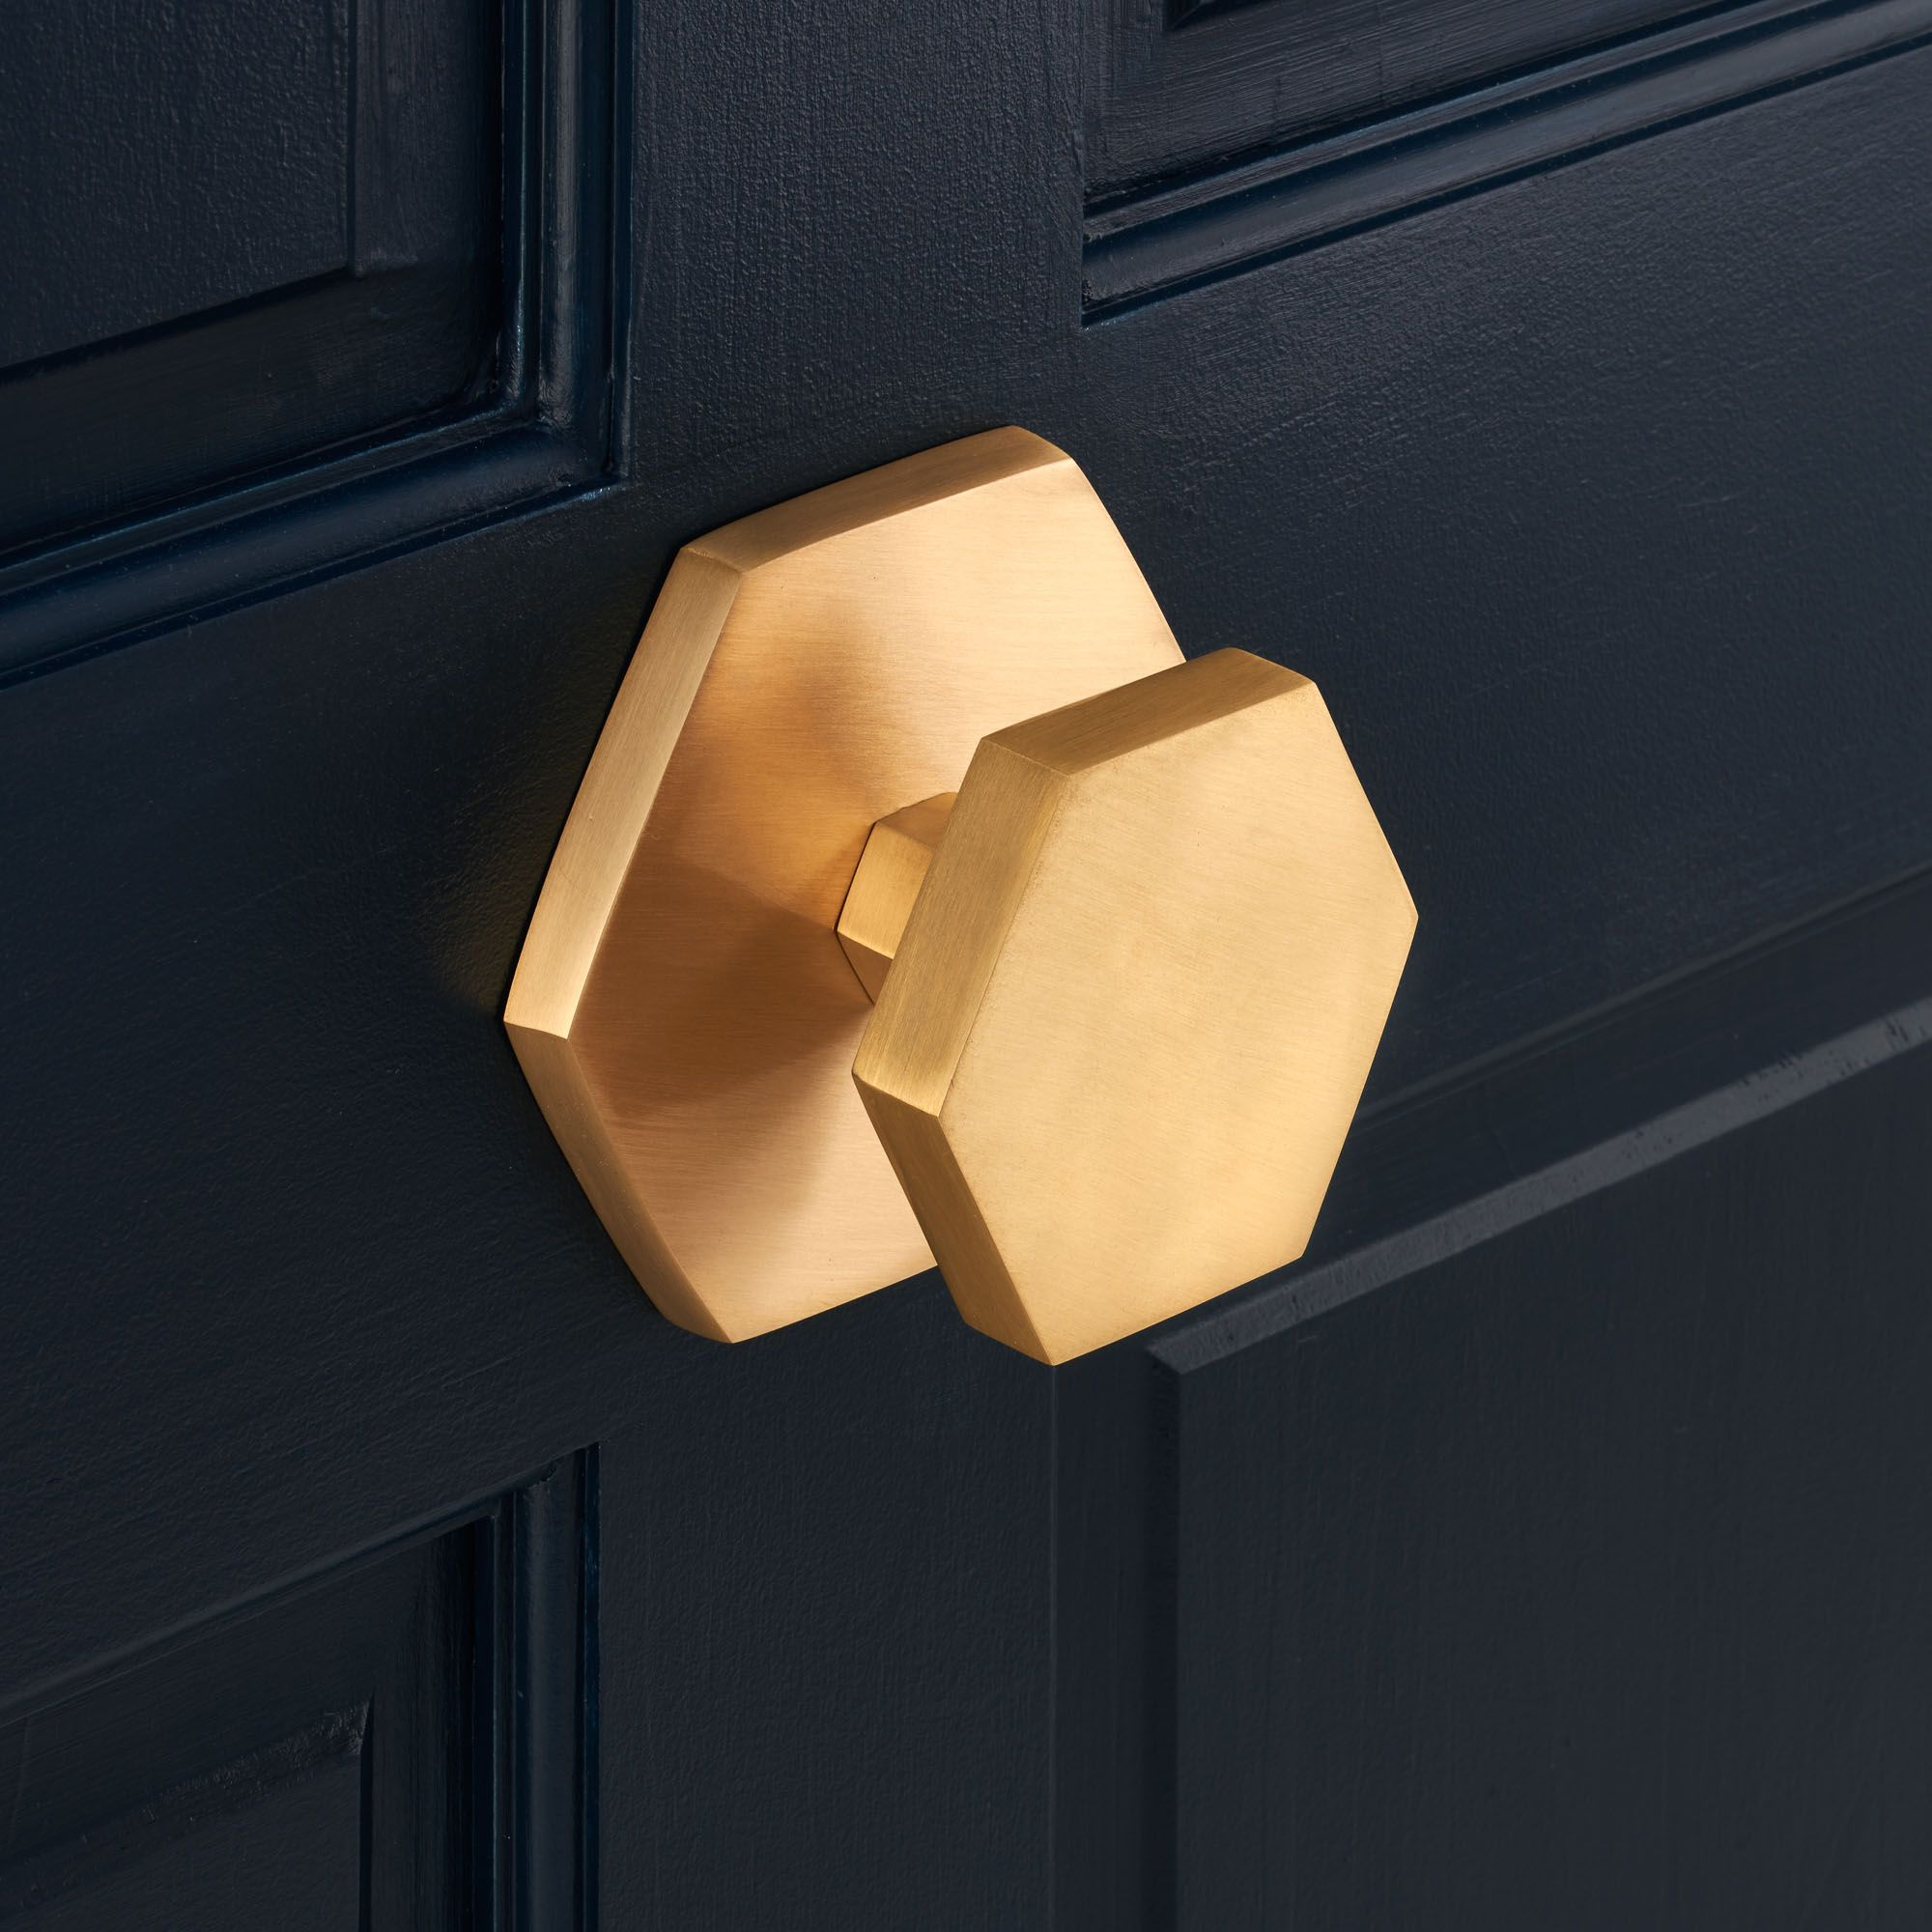 Solid brass gold hexagonal centre door knob with a brushed finish ...